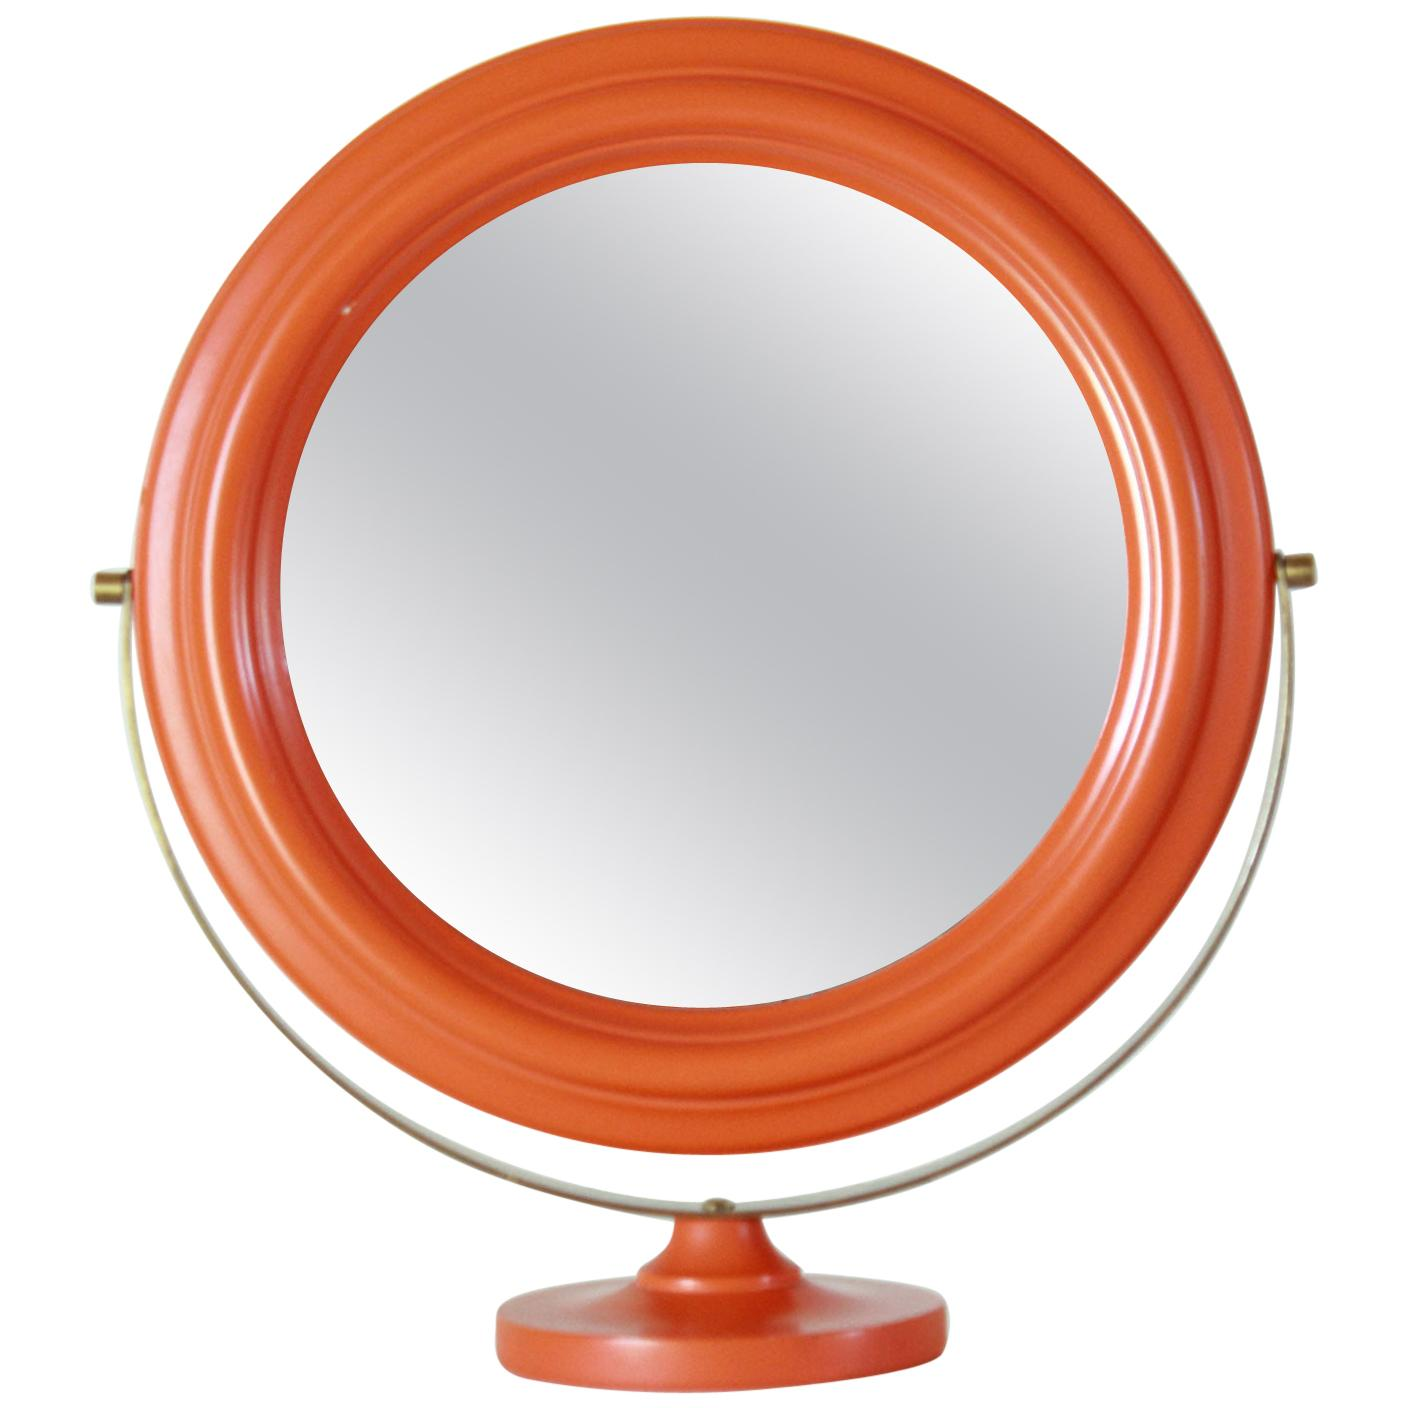 1960s Vintage Round Table Mirror with Orange Wood Frame and Brass Base